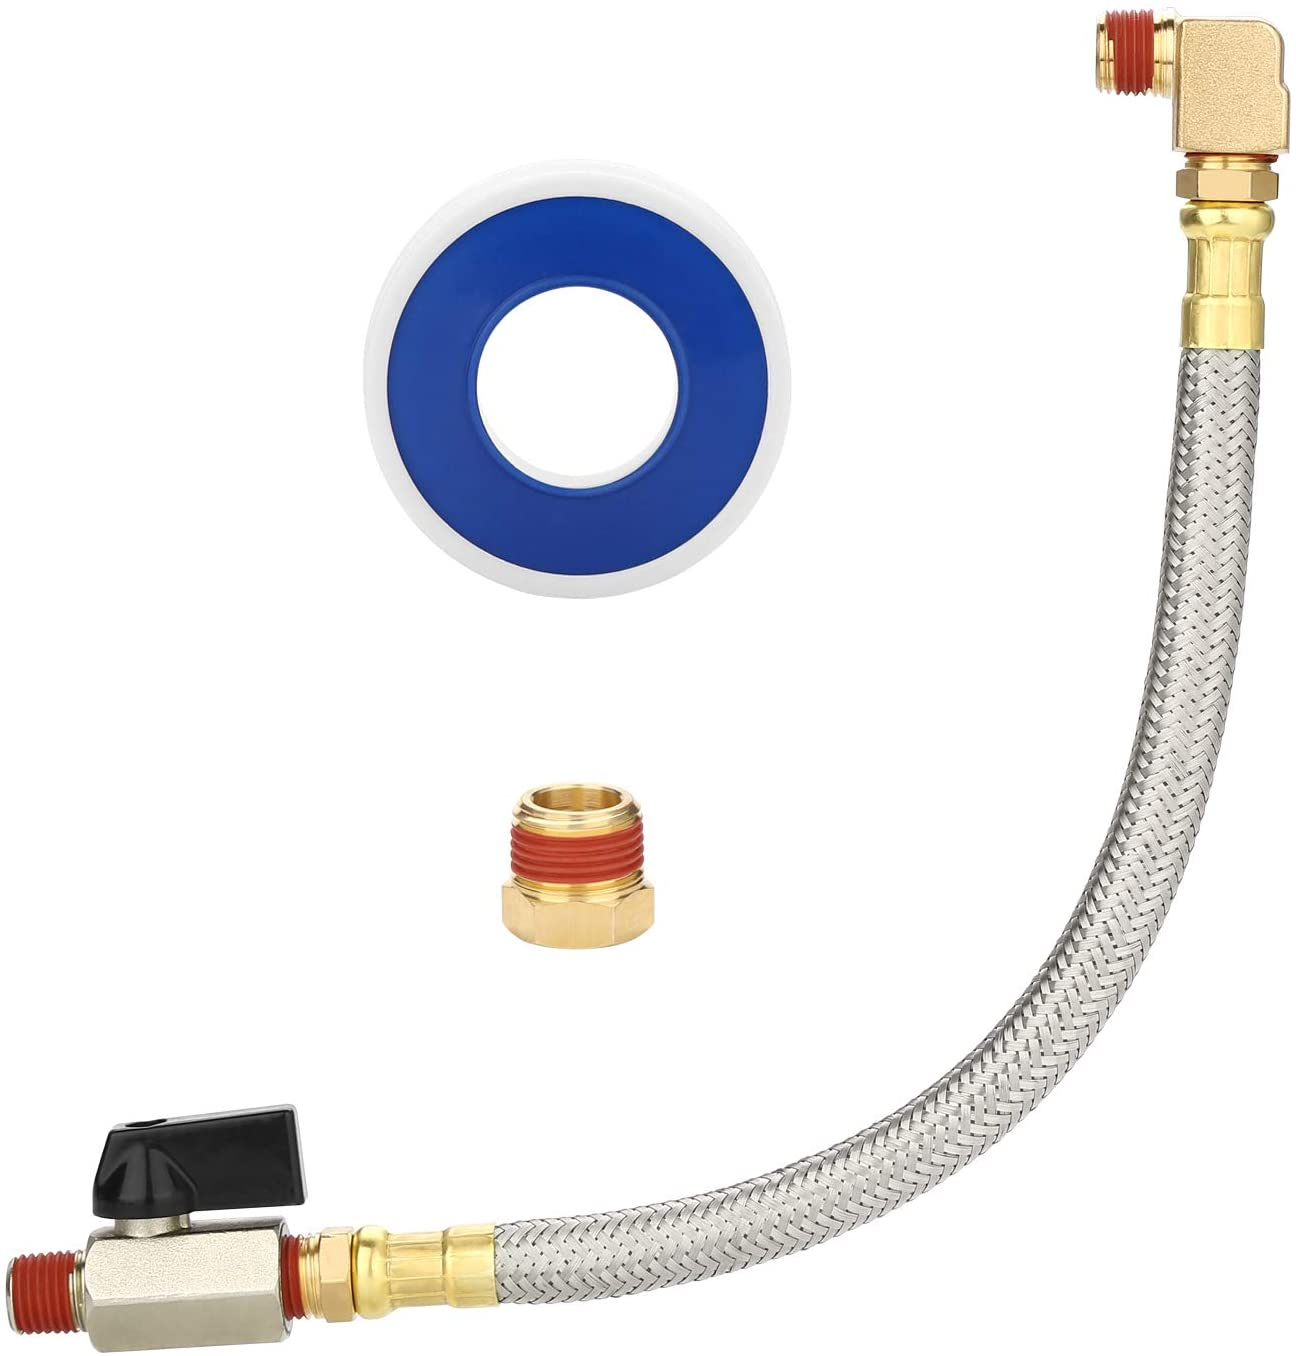 HK Extended Tank Drain Valve Assembly, 10 Inch Flexible Braided Steel Tube Air Compressor Tank Drain Hose 1/4 inch NPT, 90 Degree Brass Elbow Shut-Off Ball Valve, Pipe Fitting and Thread Seal Tape